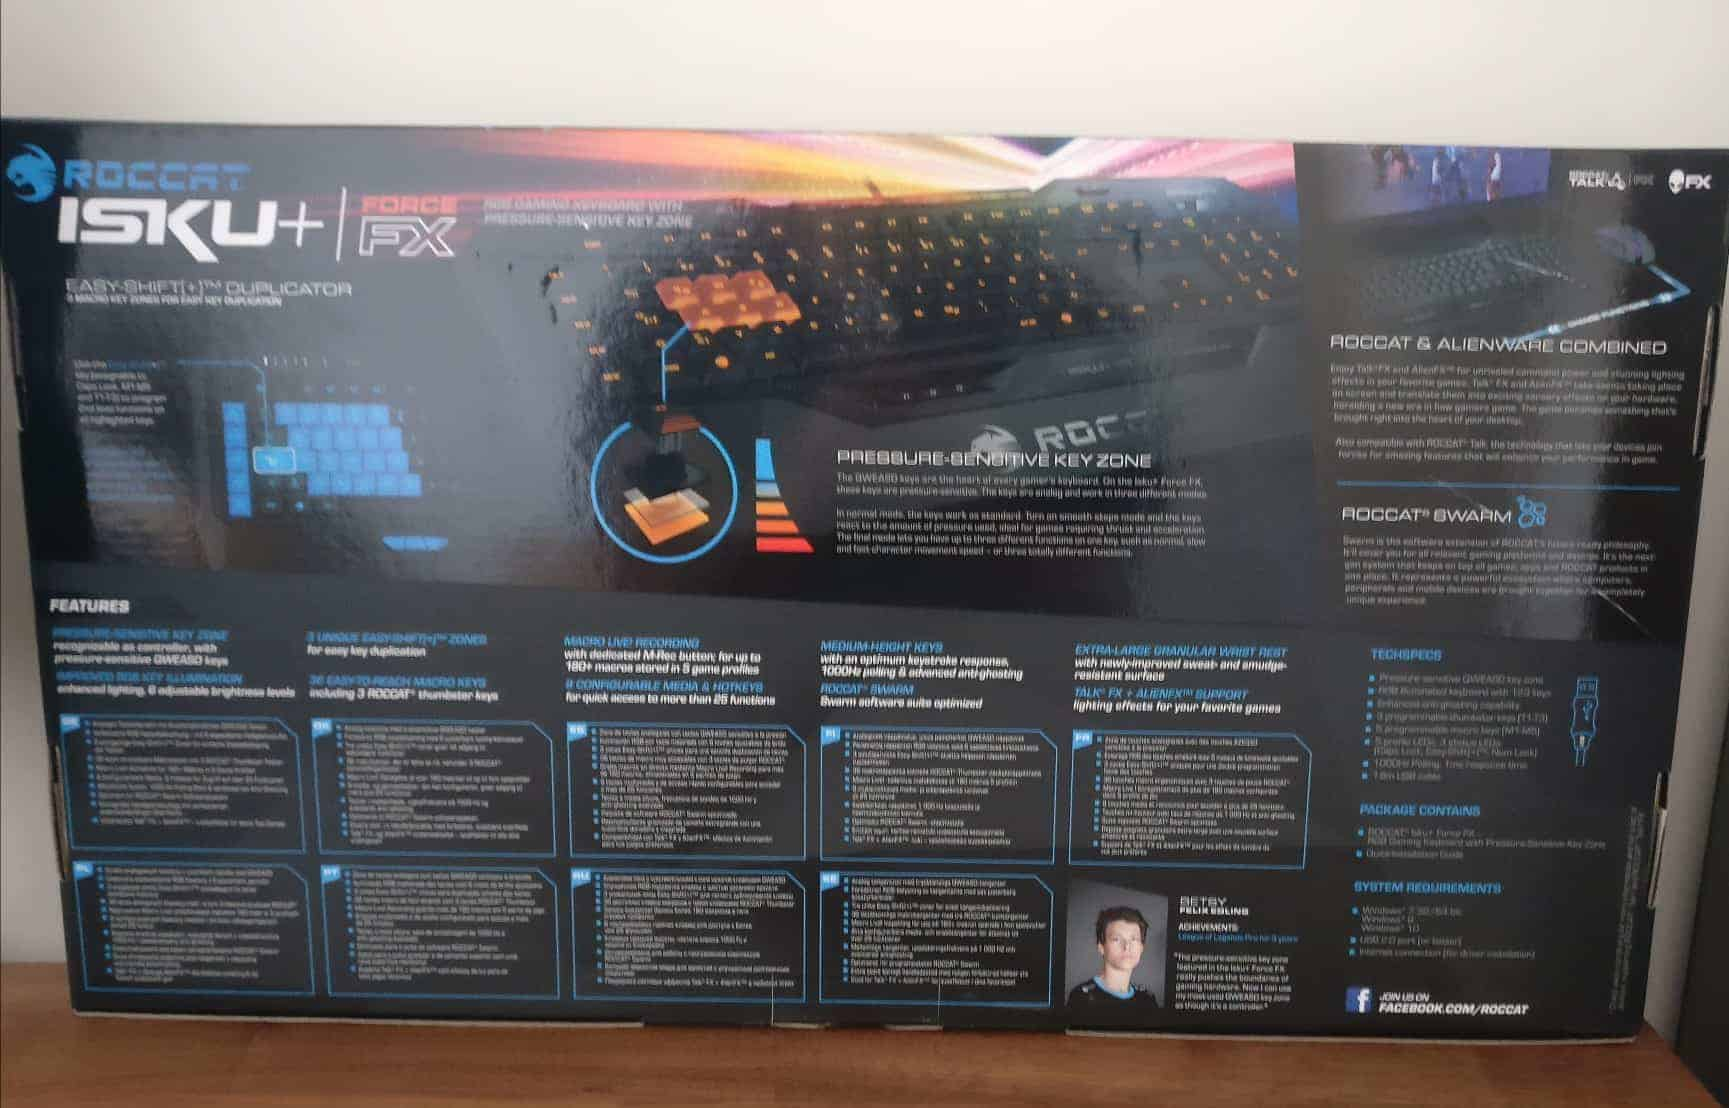 Roccat-Isku-fx-plus-Photos07 Roccat Isku+ Force FX Gaming Keyboard Review